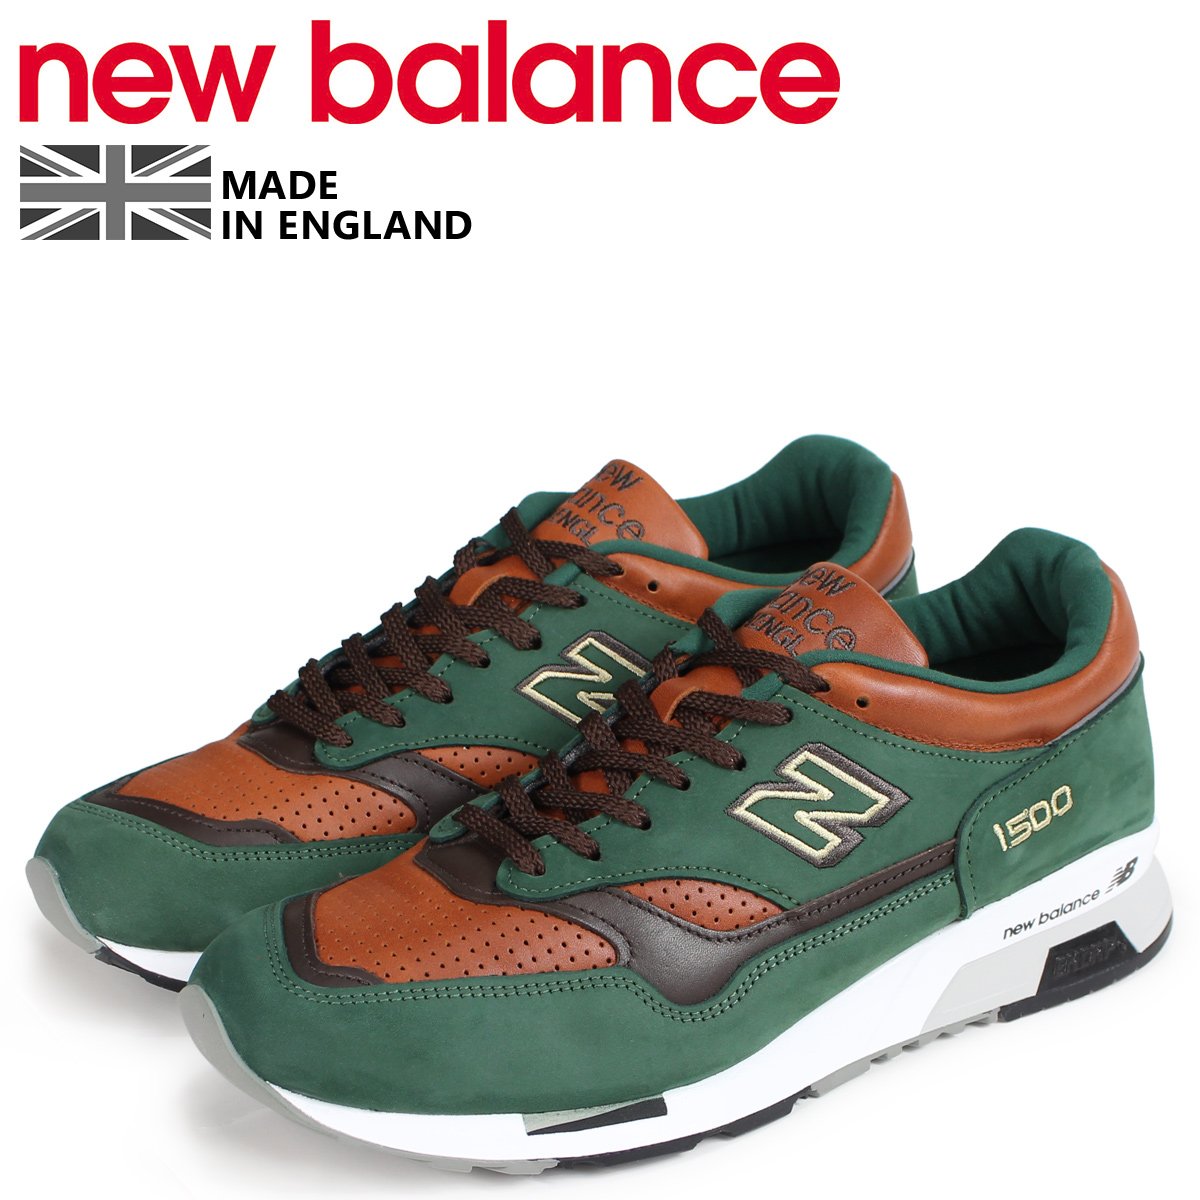 the latest 171d2 499c6 new balance 1500 men's New Balance sneakers M1500GT D Wise MADE IN UK green